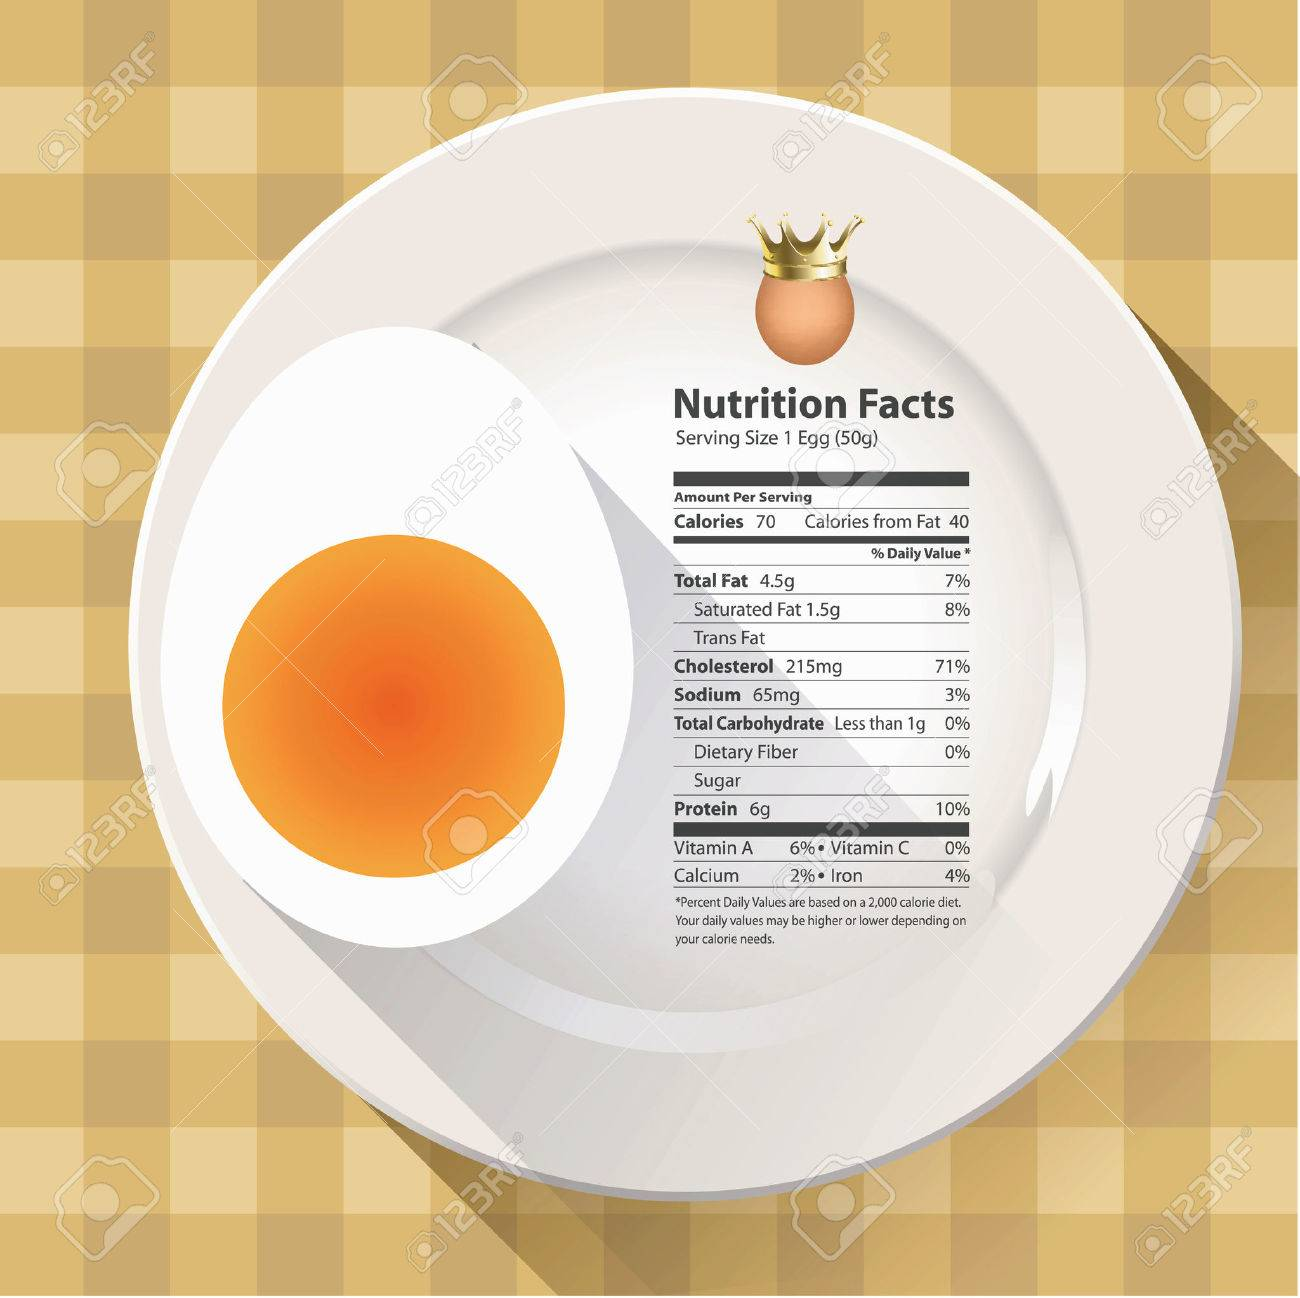 Vector - Vector of Nutrition facts egg